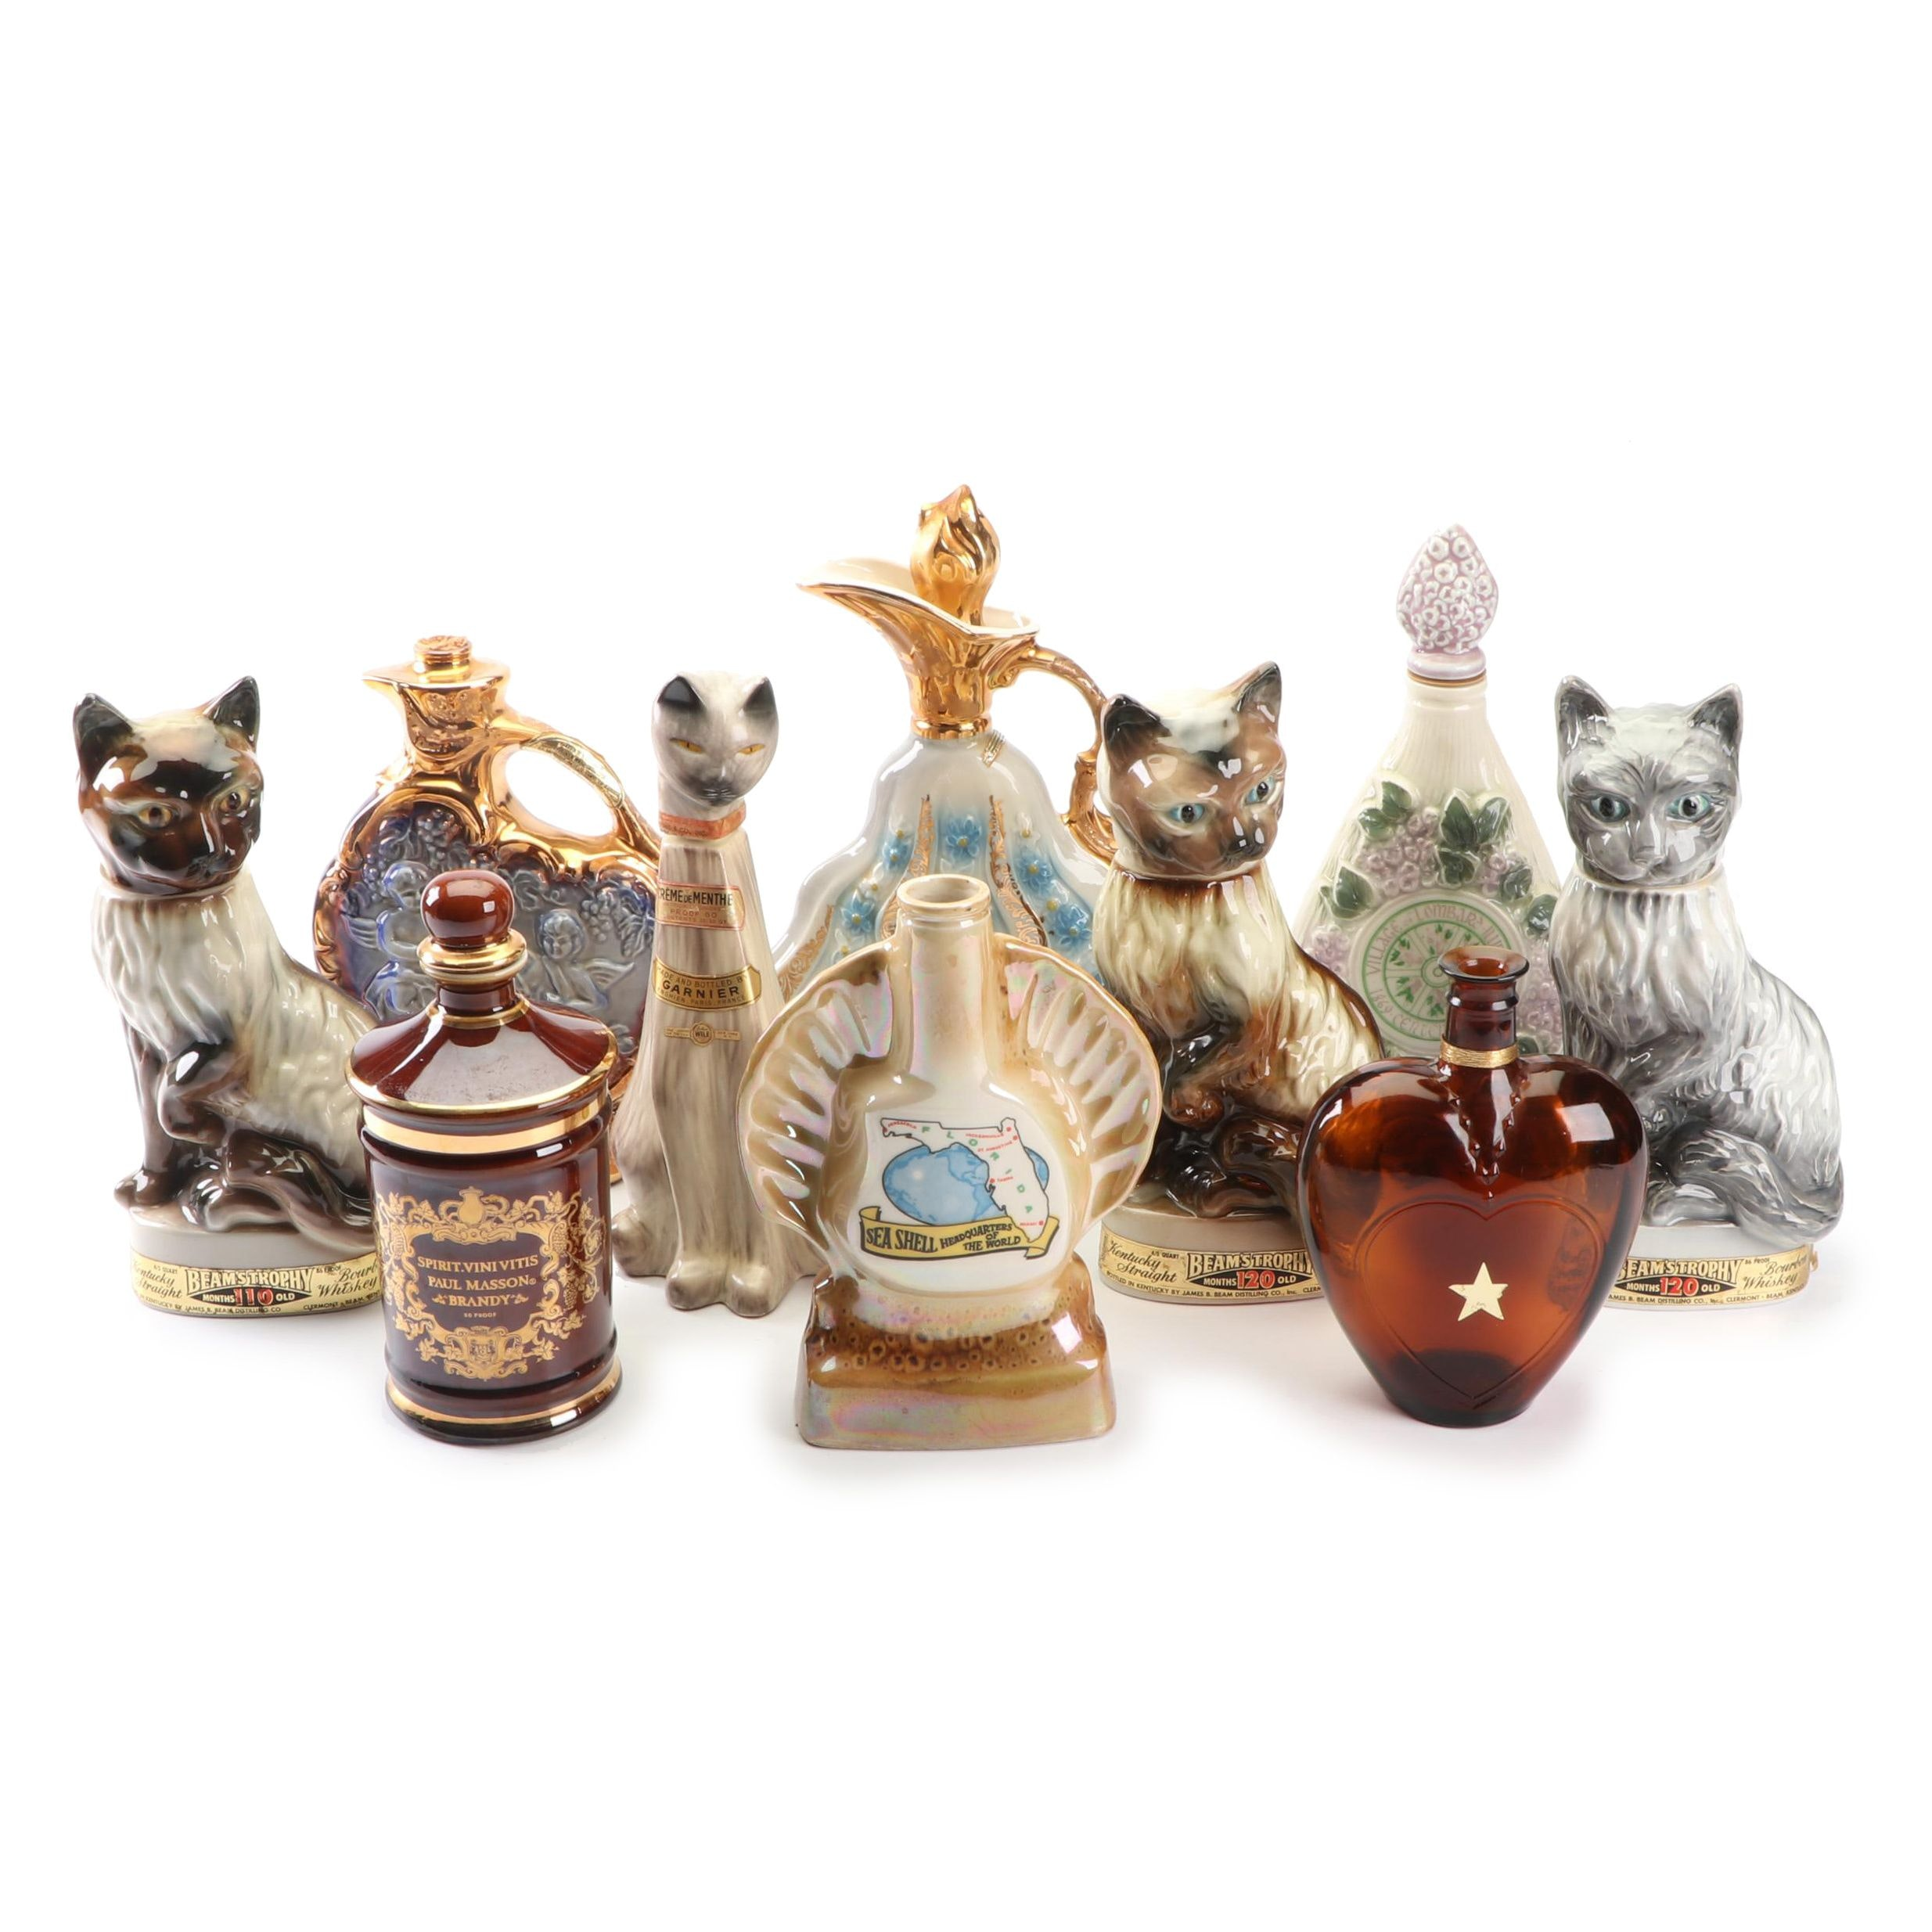 Collection of Ceramic and Glass Figural Decanters by Jim Beam and More